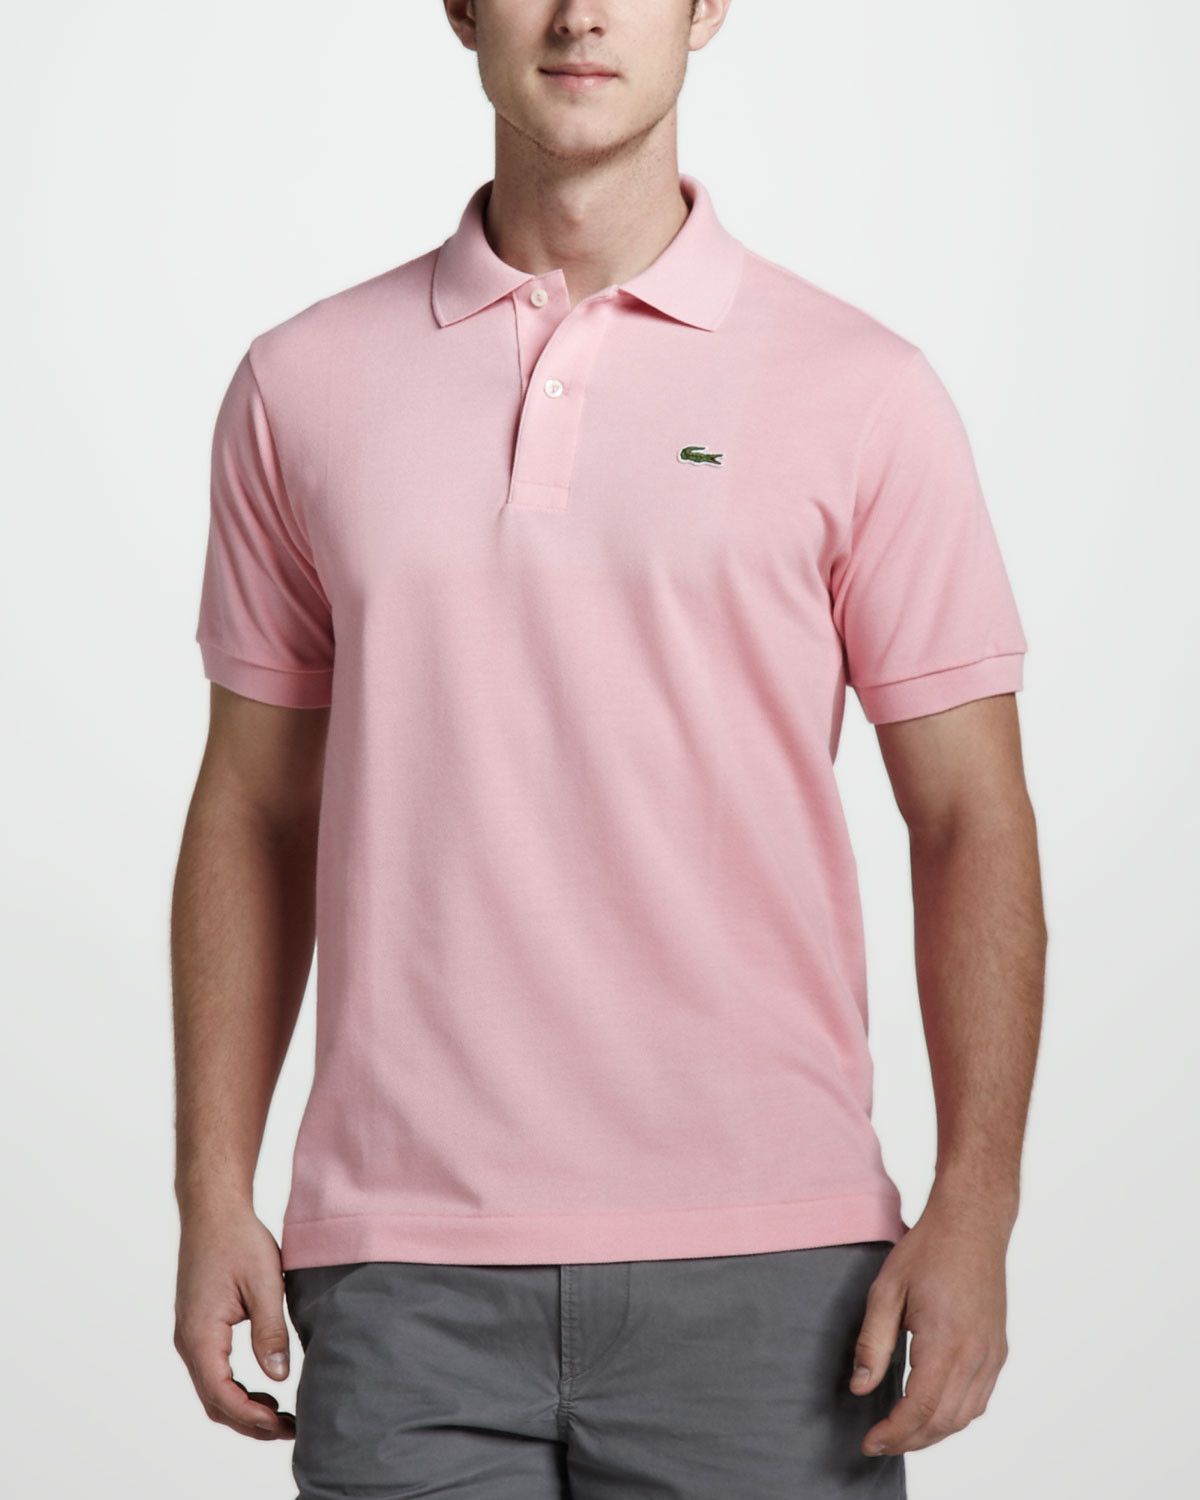 Lyst - Lacoste Classic Pique Polo in Pink for Men